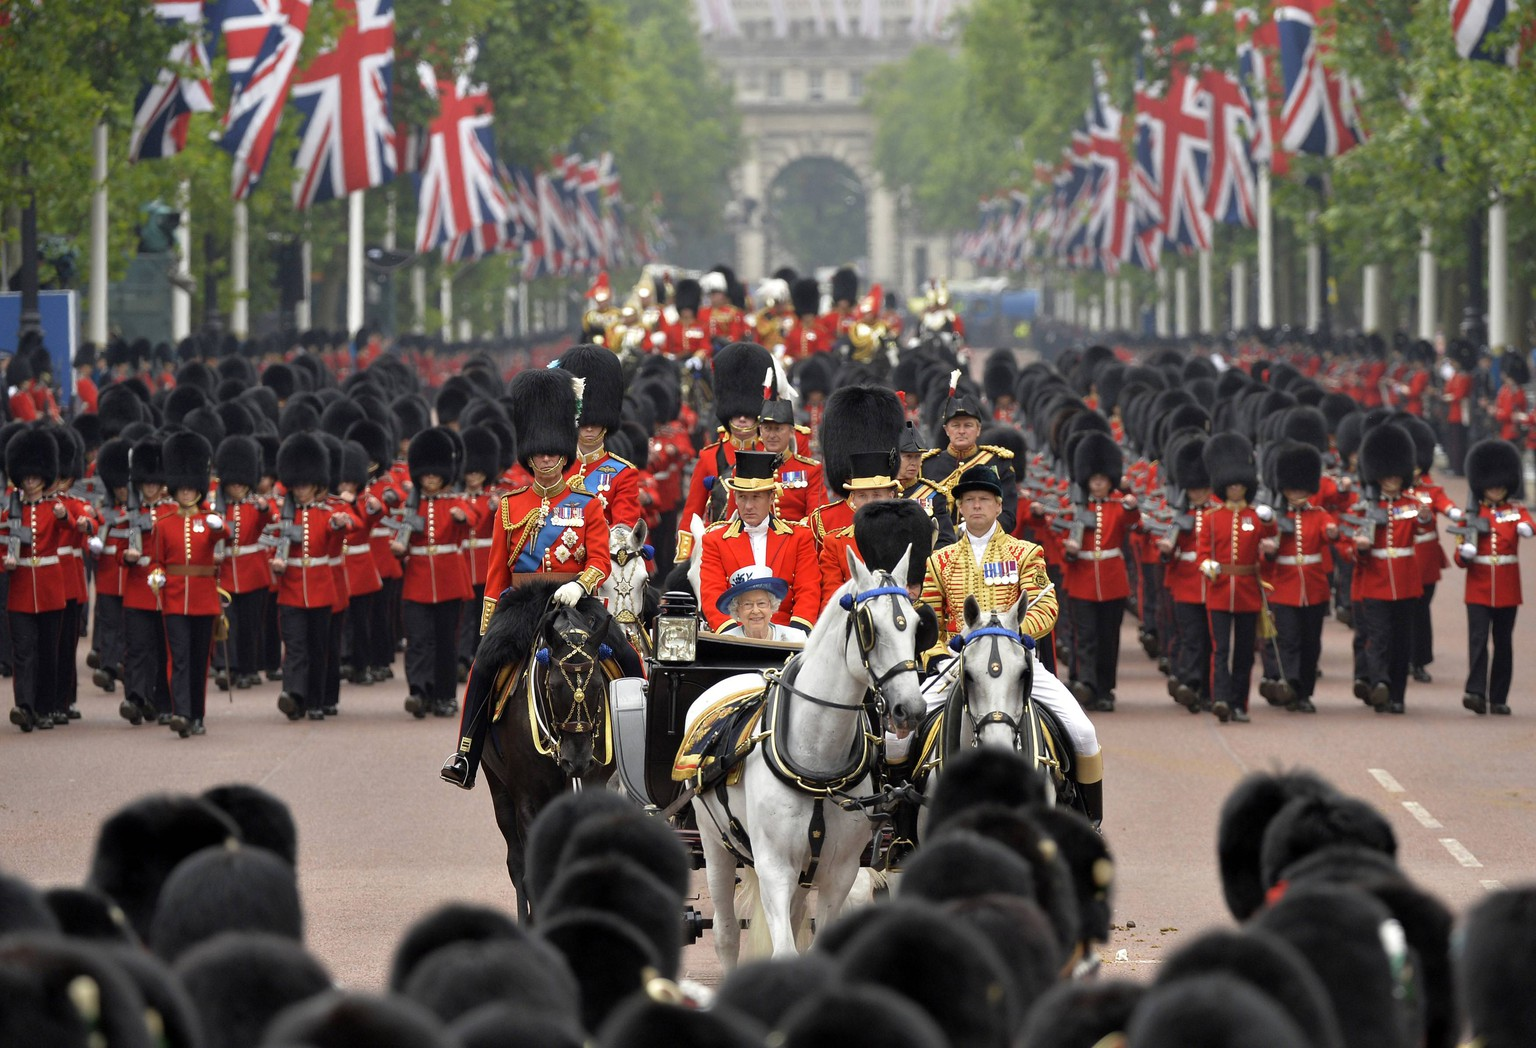 Britain's Queen Elizabeth (C) rides down The Mall as she returns to Buckingham Palace in the annual Trooping the Colour ceremony to celebrate her official birthday in central London, June 14, 2014. REUTERS/Toby Melville (BRITAIN - Tags: ANNIVERSARY ROYALS)